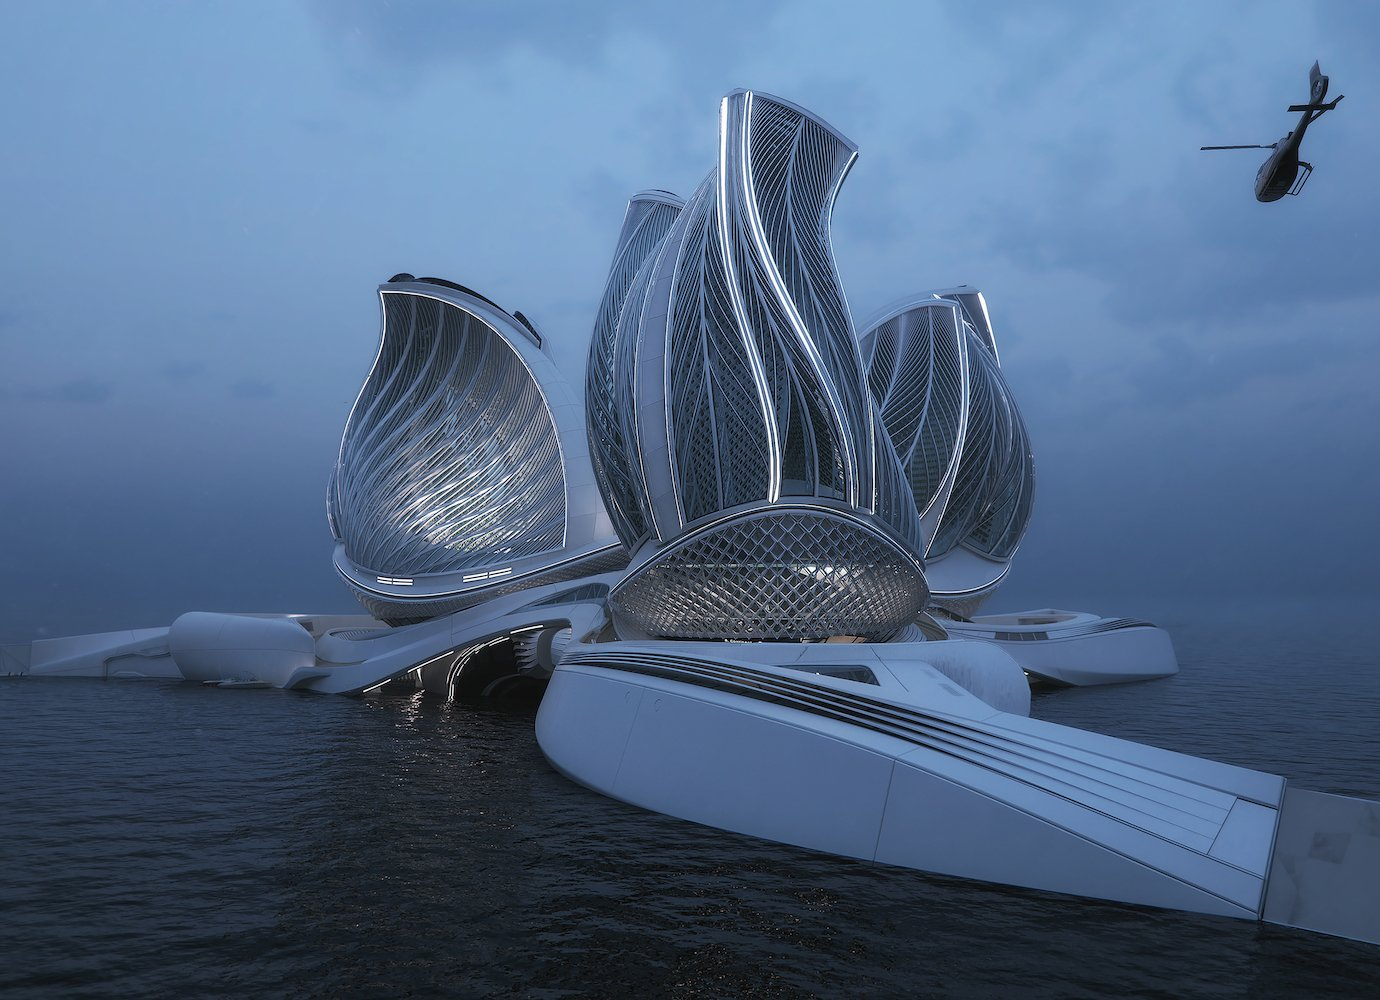 The 8th Continent: Slovak designer wins top prize for ocean station prototype that removes plastic from the sea